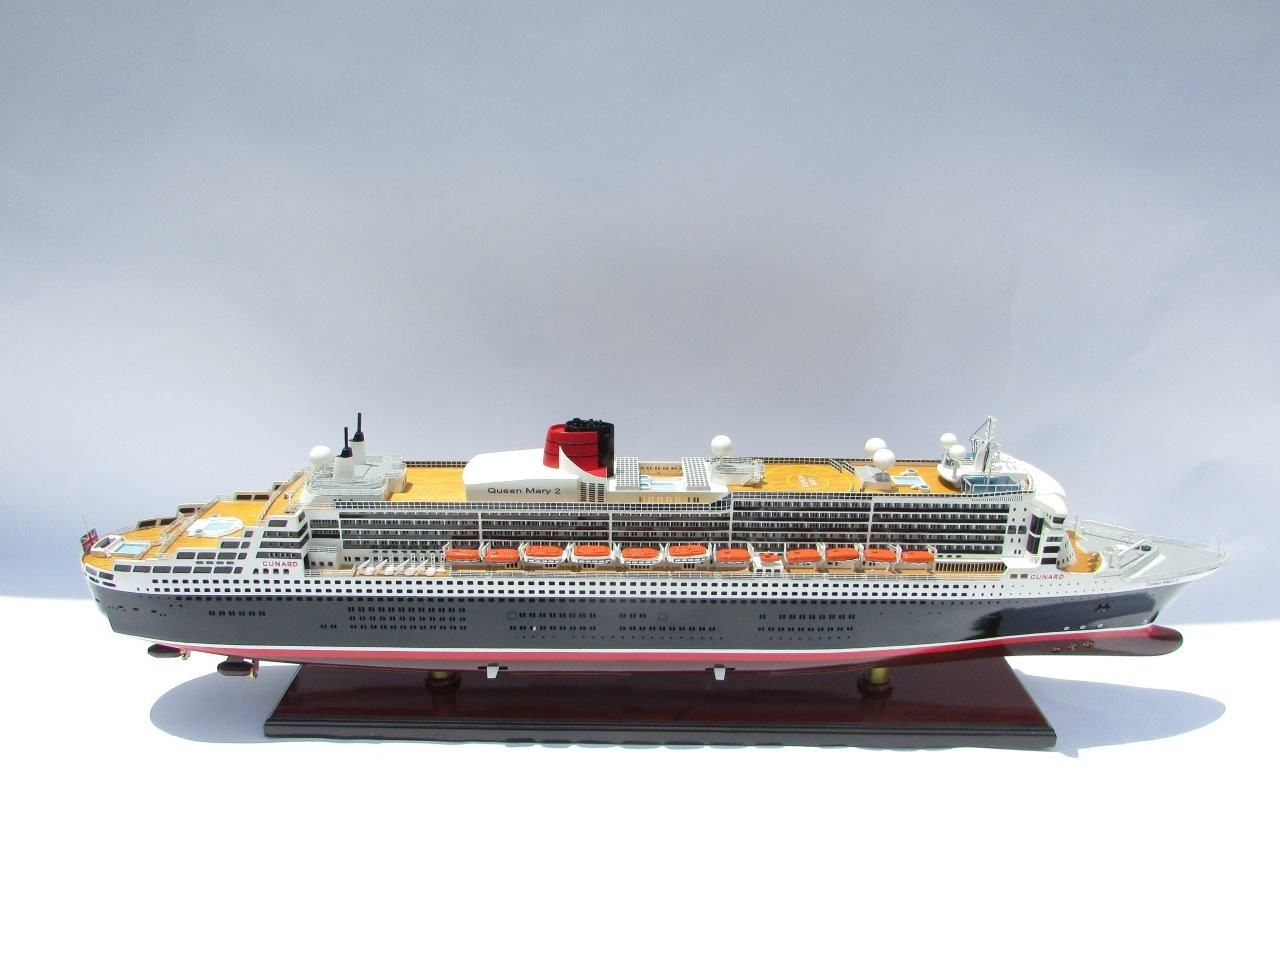 Maquette Queen Mary 2